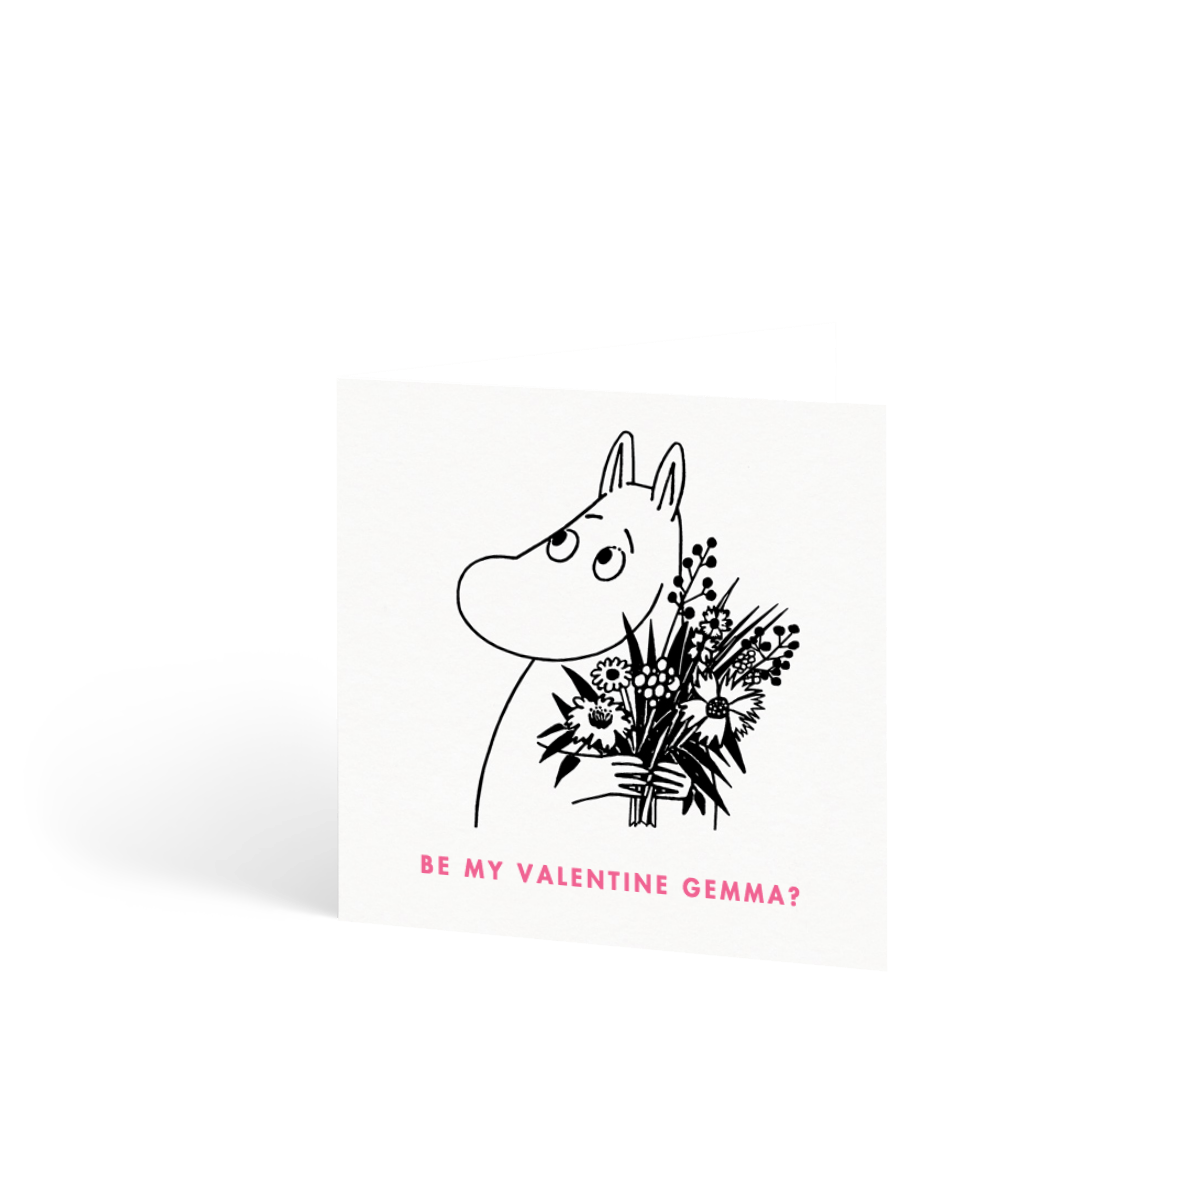 Https%3a%2f%2fwww.papier.com%2fproduct image%2f32883%2f16%2fmoomintroll with flowers 8241 front 1515763903.png?ixlib=rb 1.1